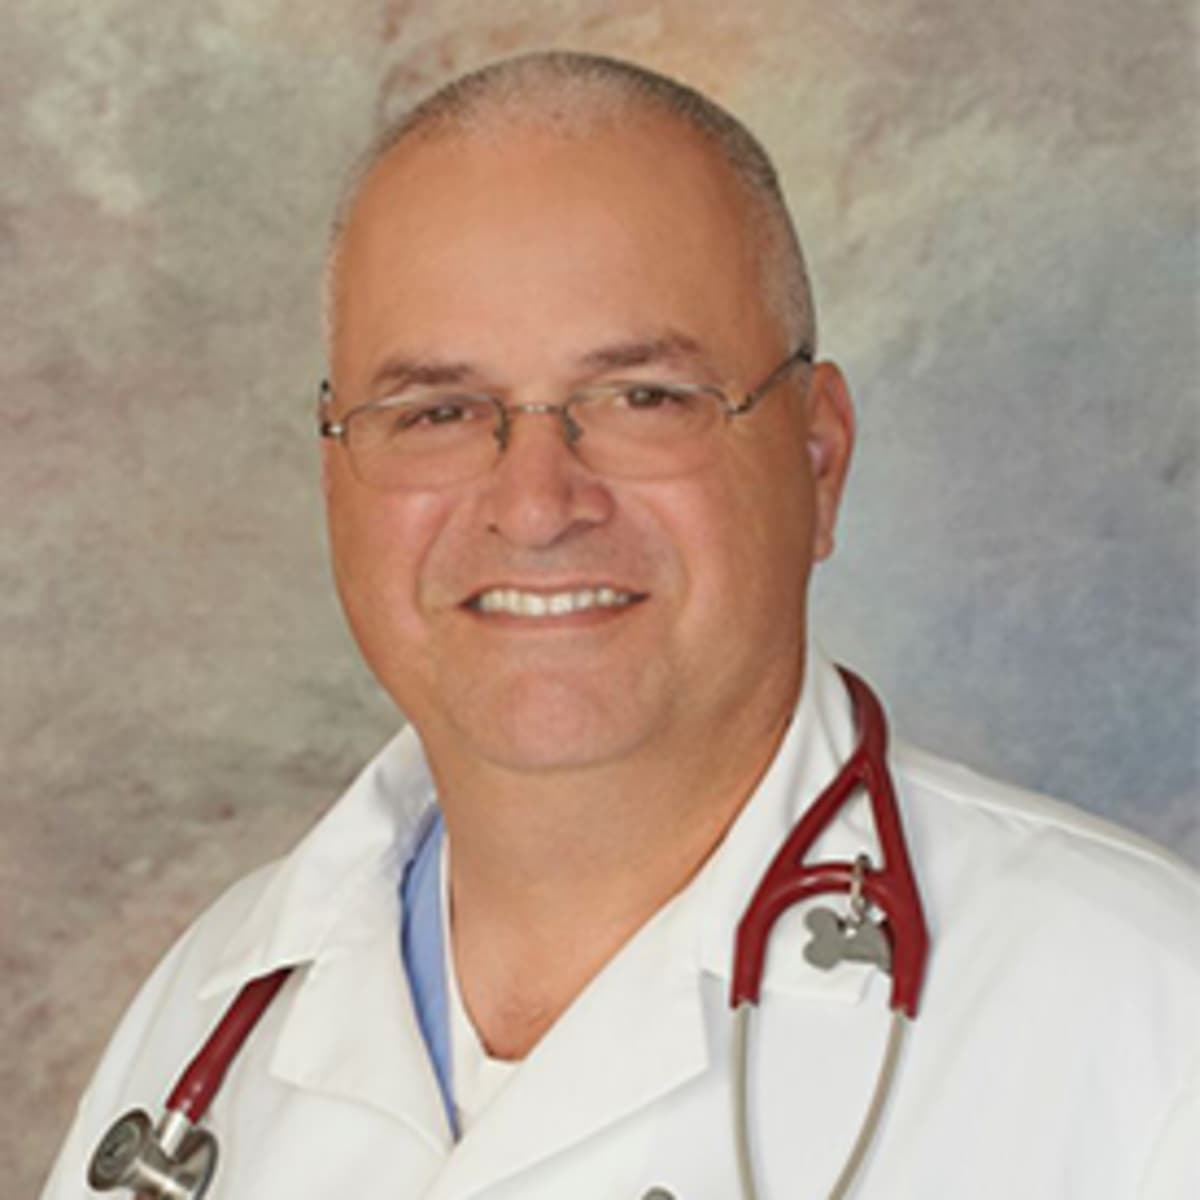 dr thomas anderson do melbourne fl family doctor